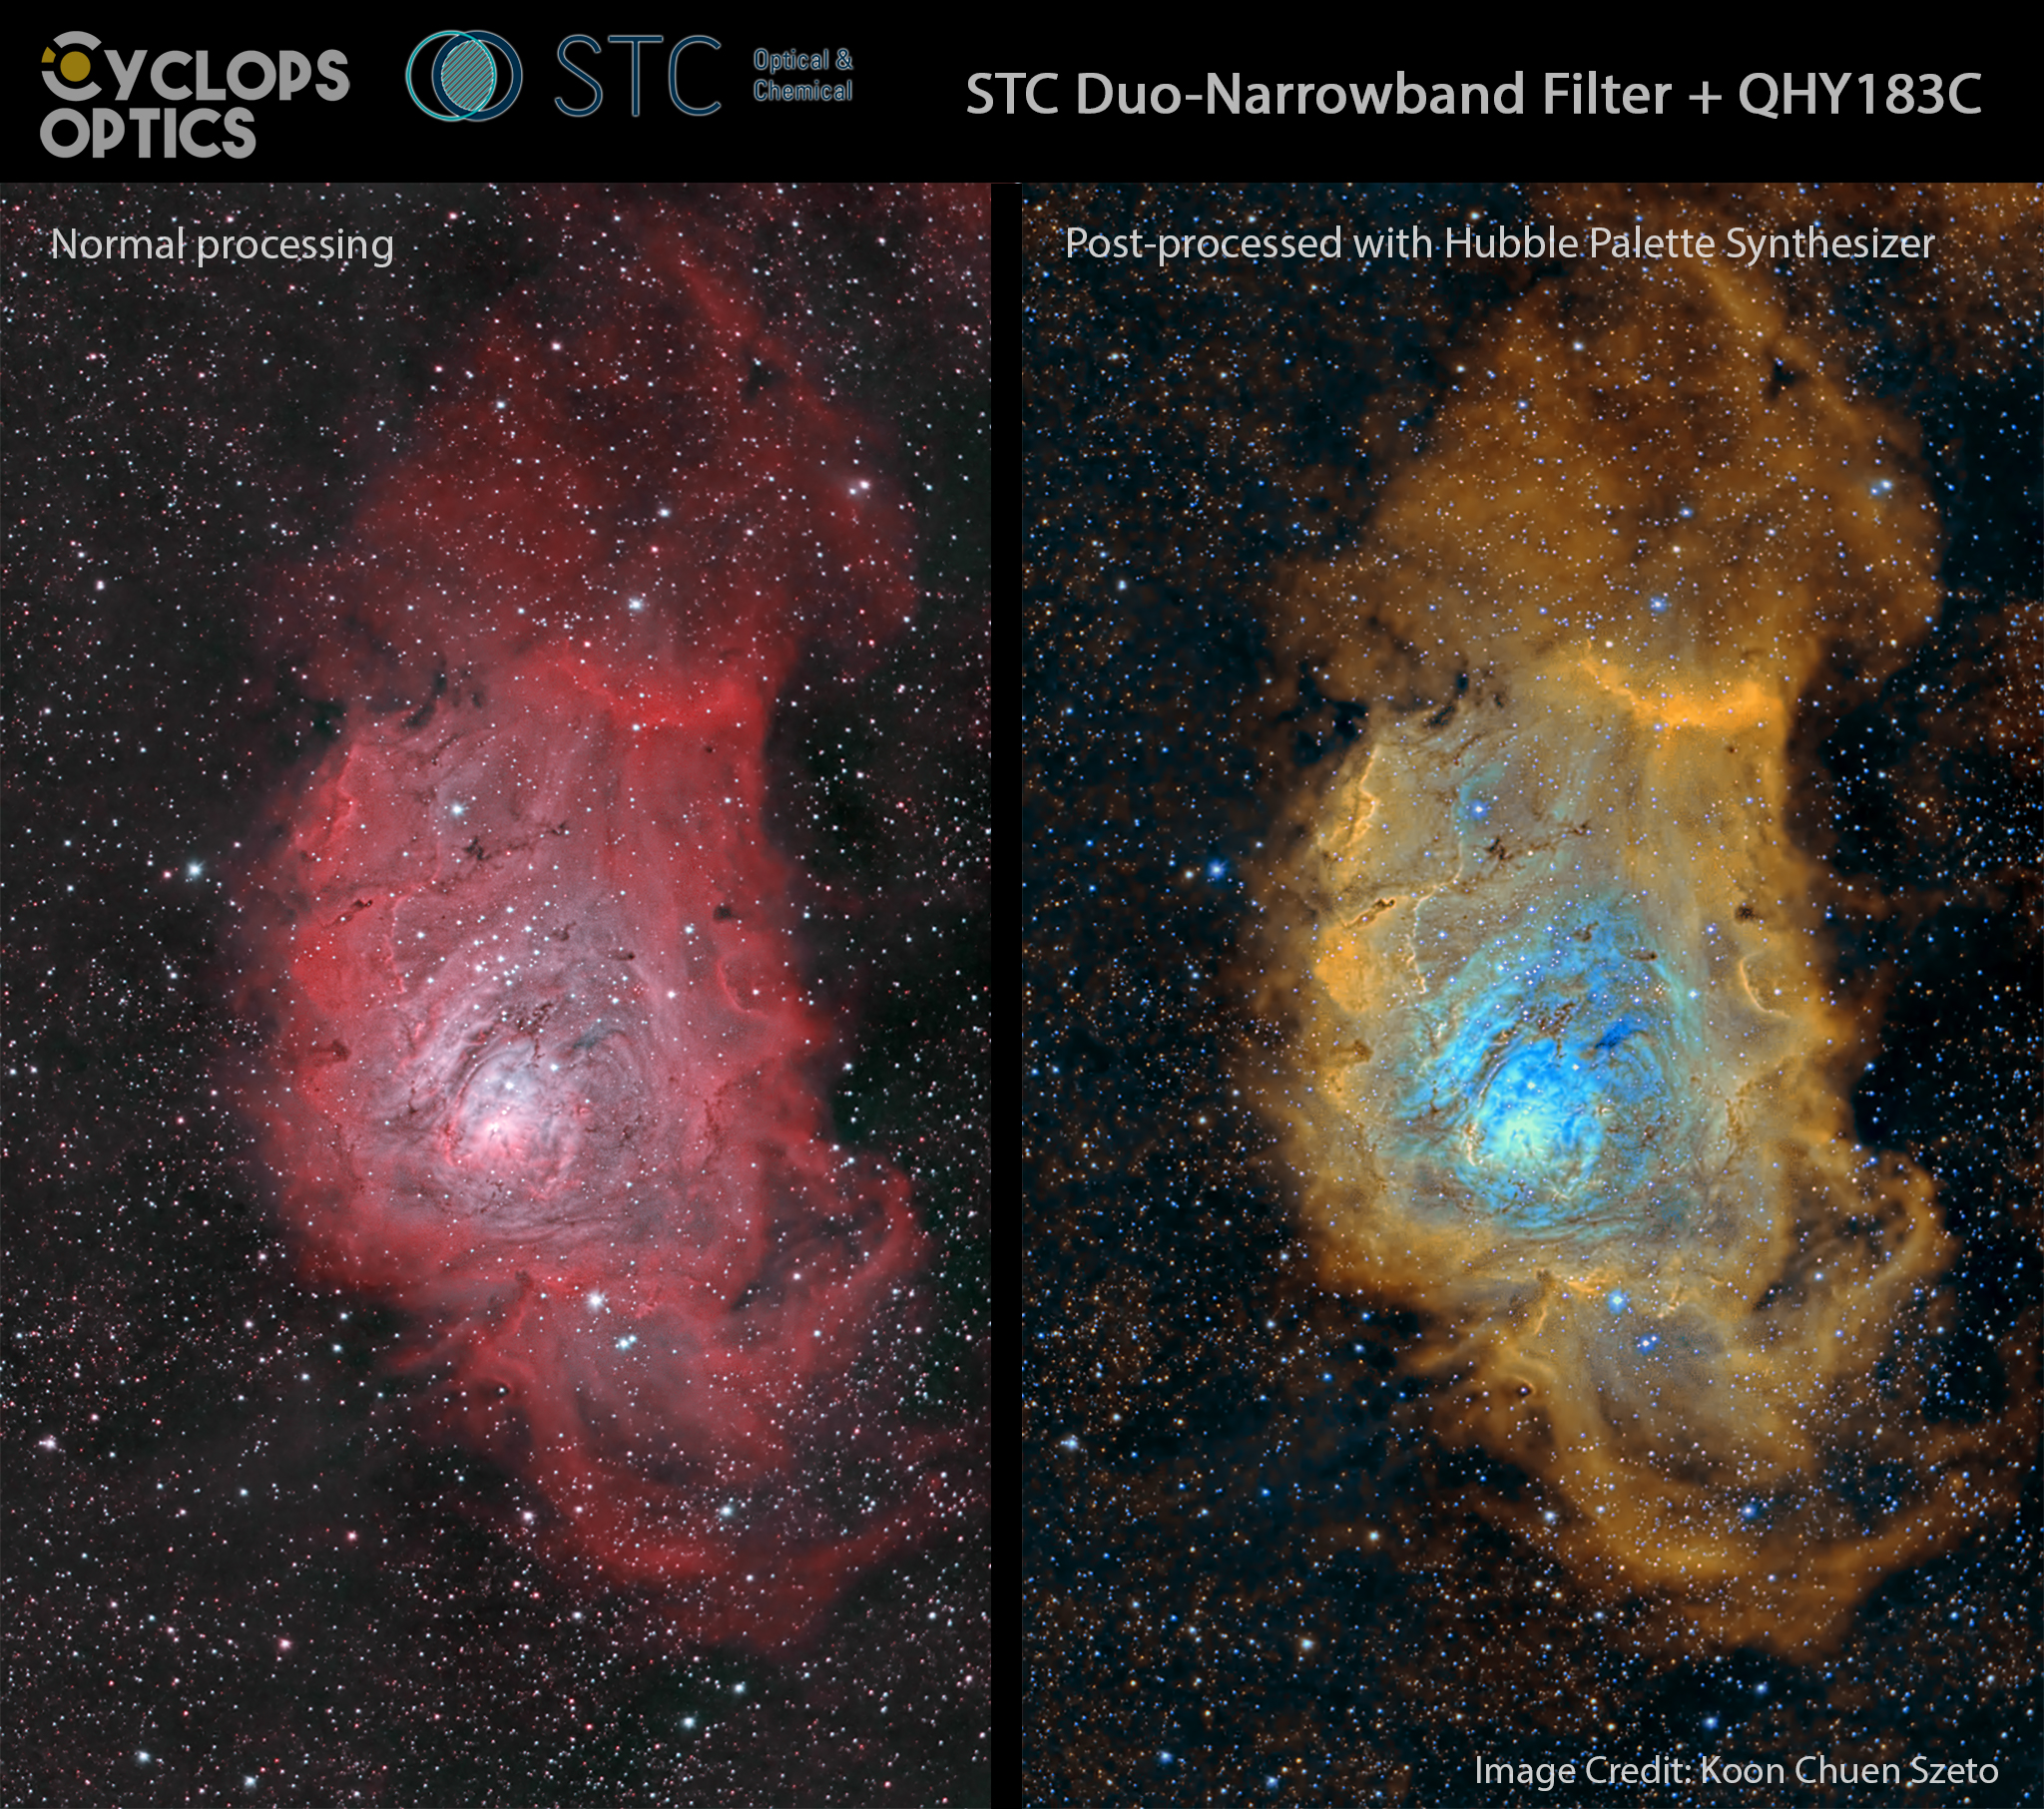 20180114-m8-duo-narrowband-qhy183c-hps-01.jpg